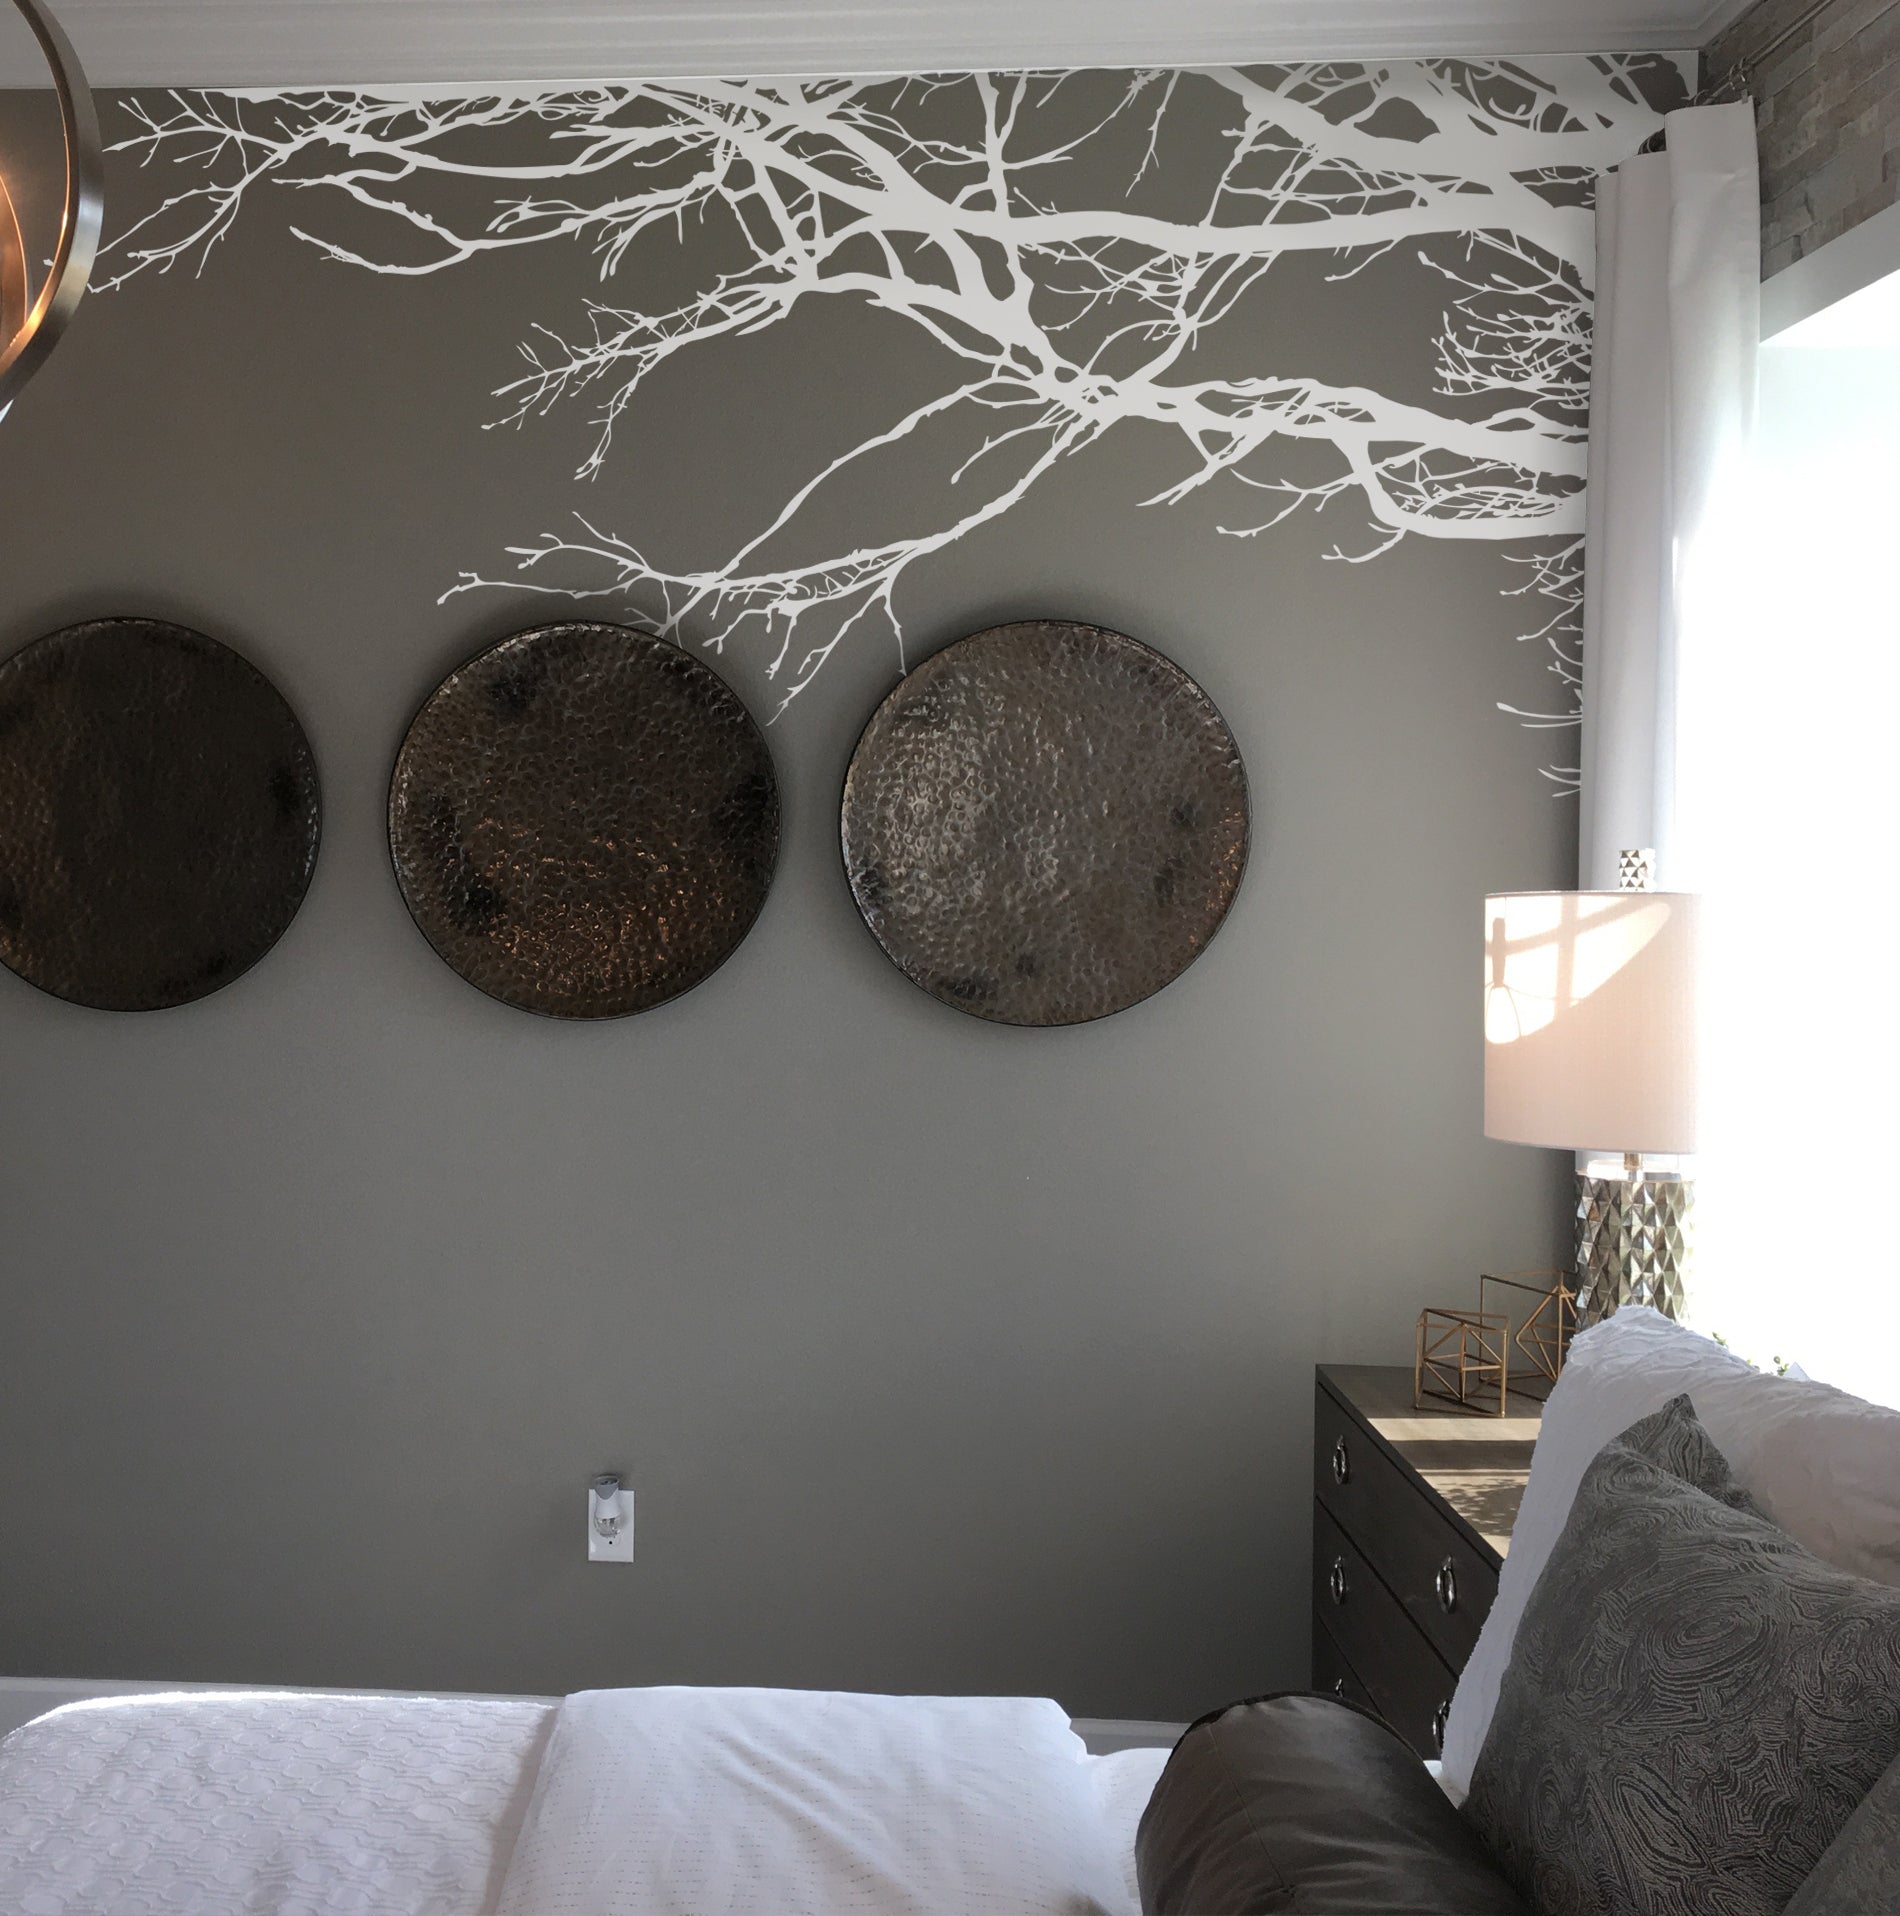 Tree Top Branches Wall Decal Corner Edge Application Decor #444